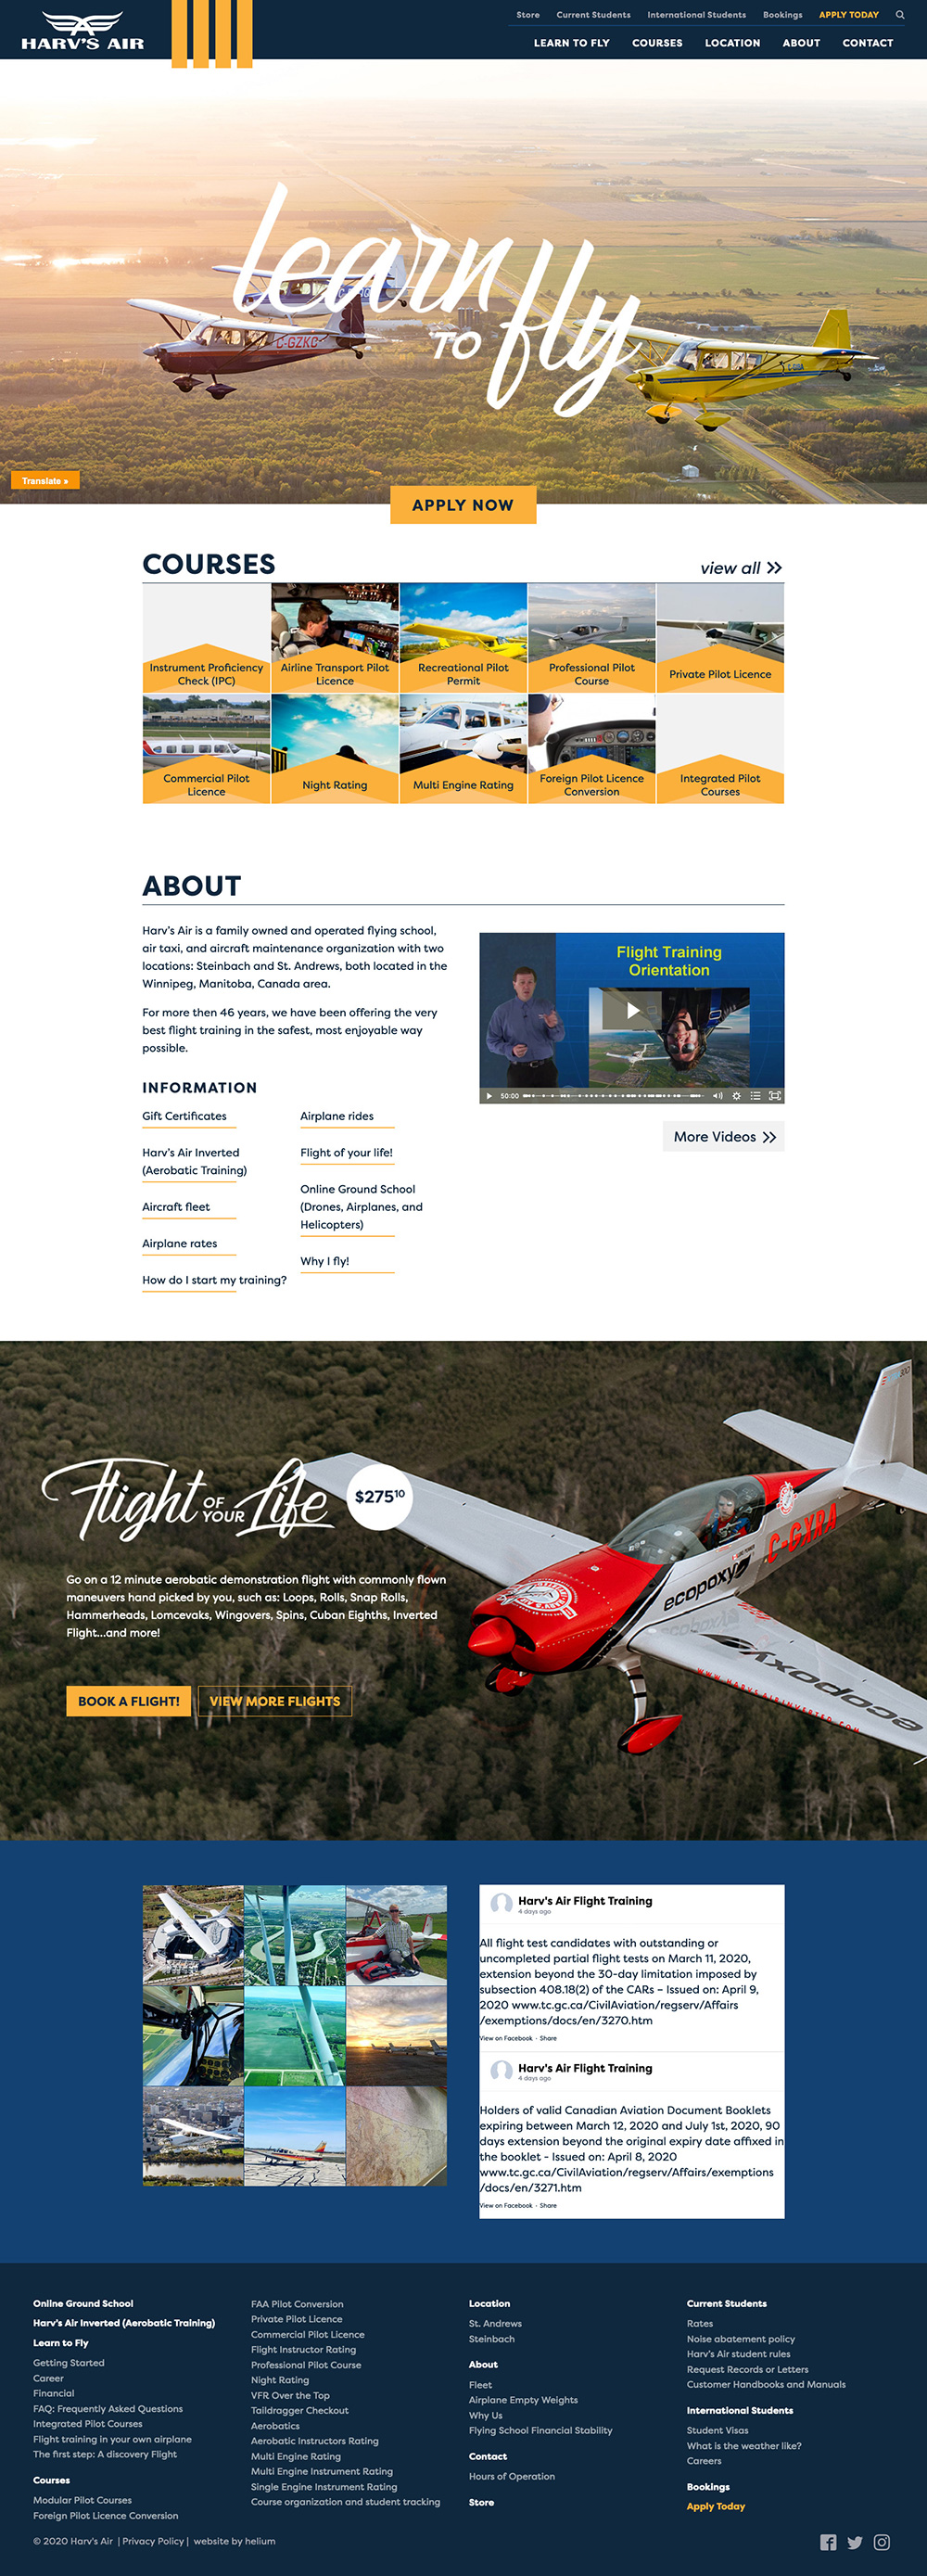 Screenshot of Harv's Air website's home page